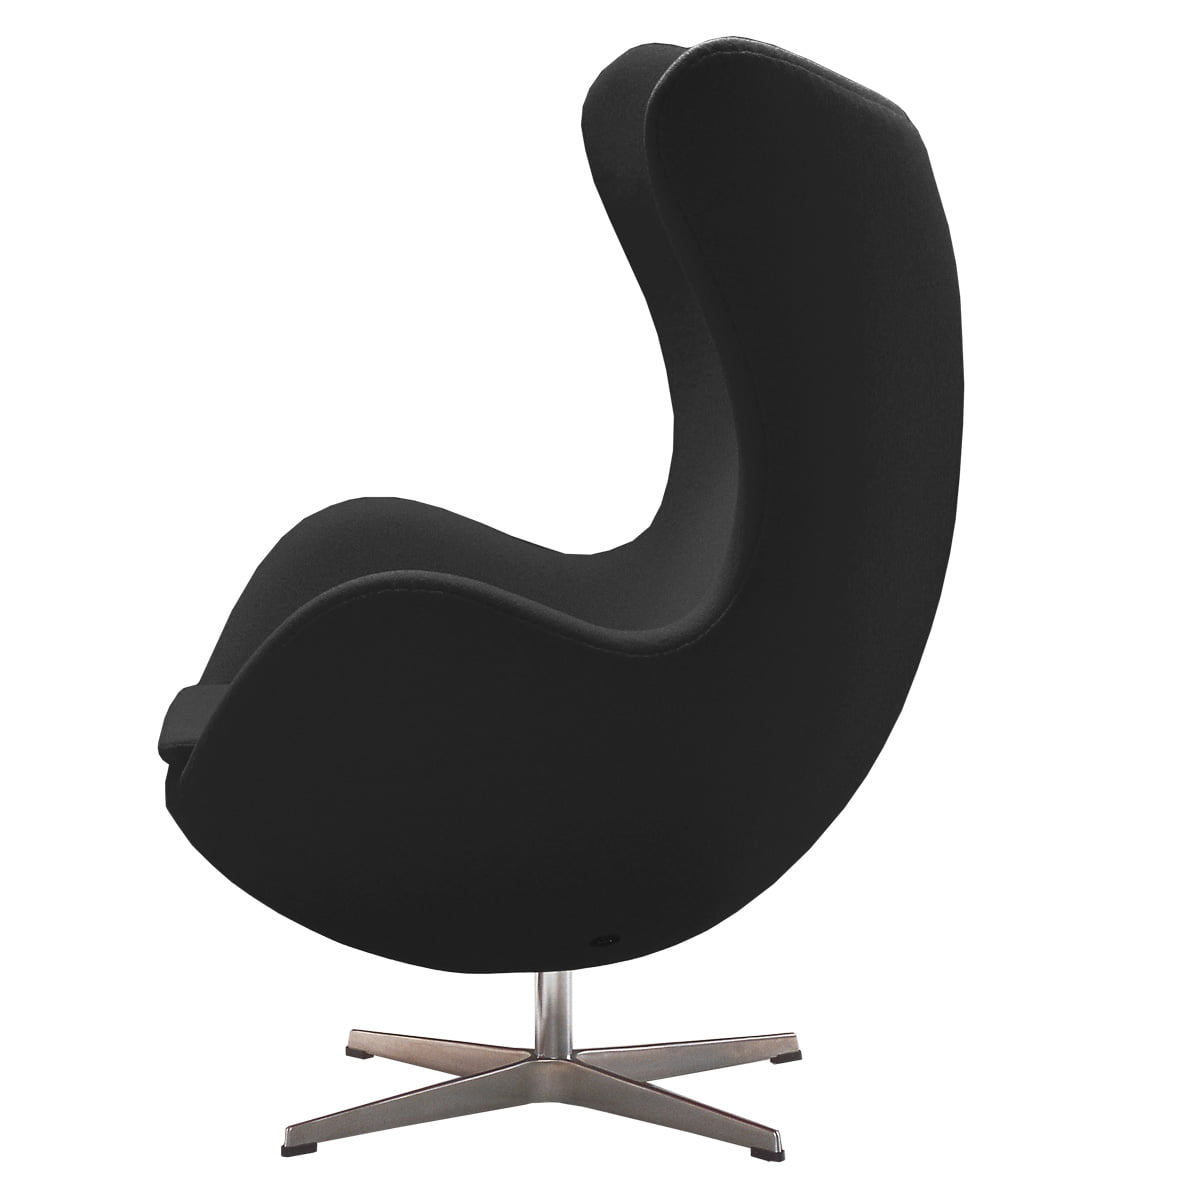 egg armchair by fritz hansen in the shop, Hause deko